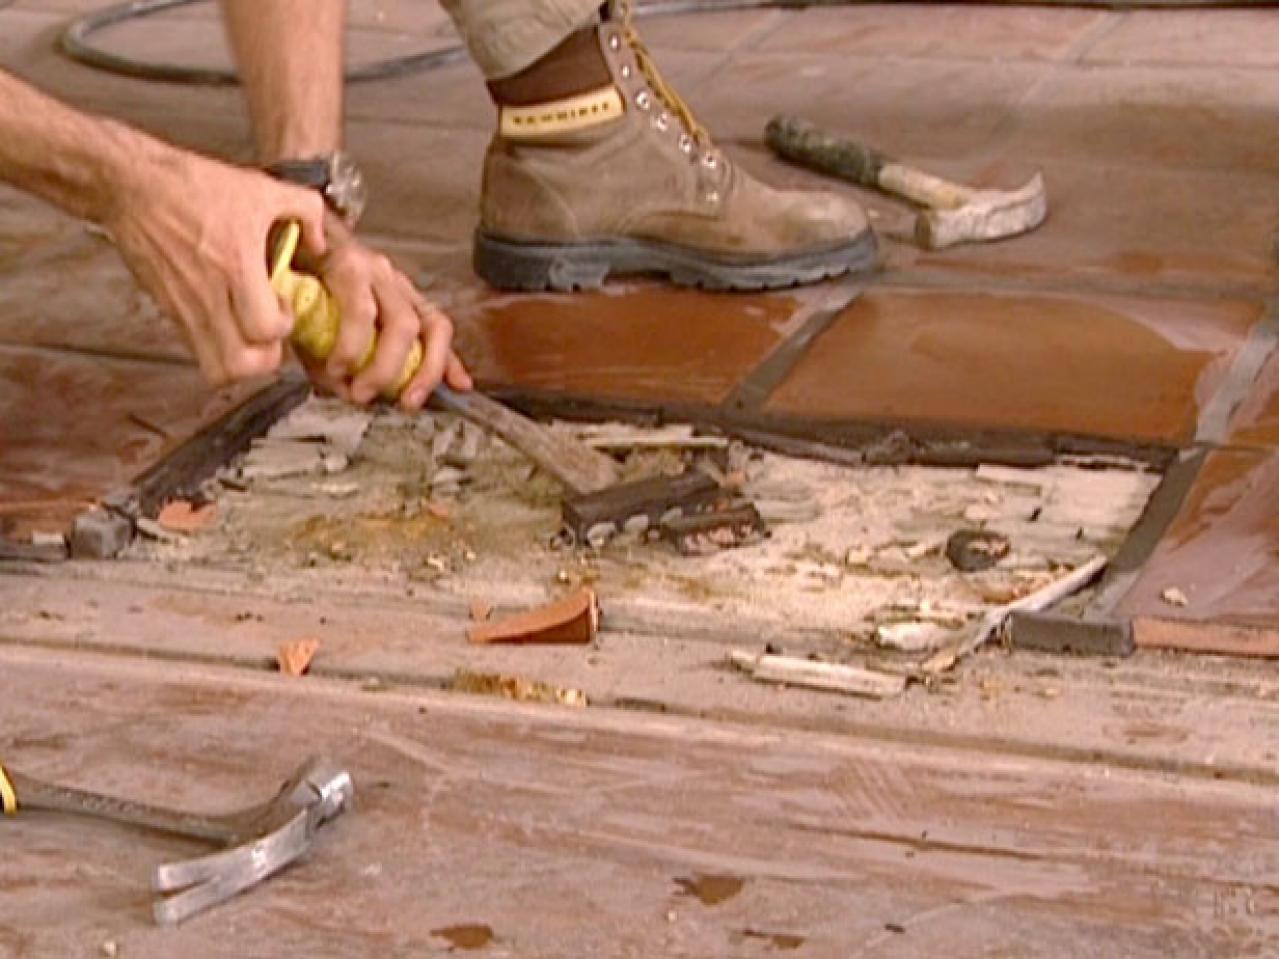 A Grinder Cuts Out Grout For Easy Tile Removal